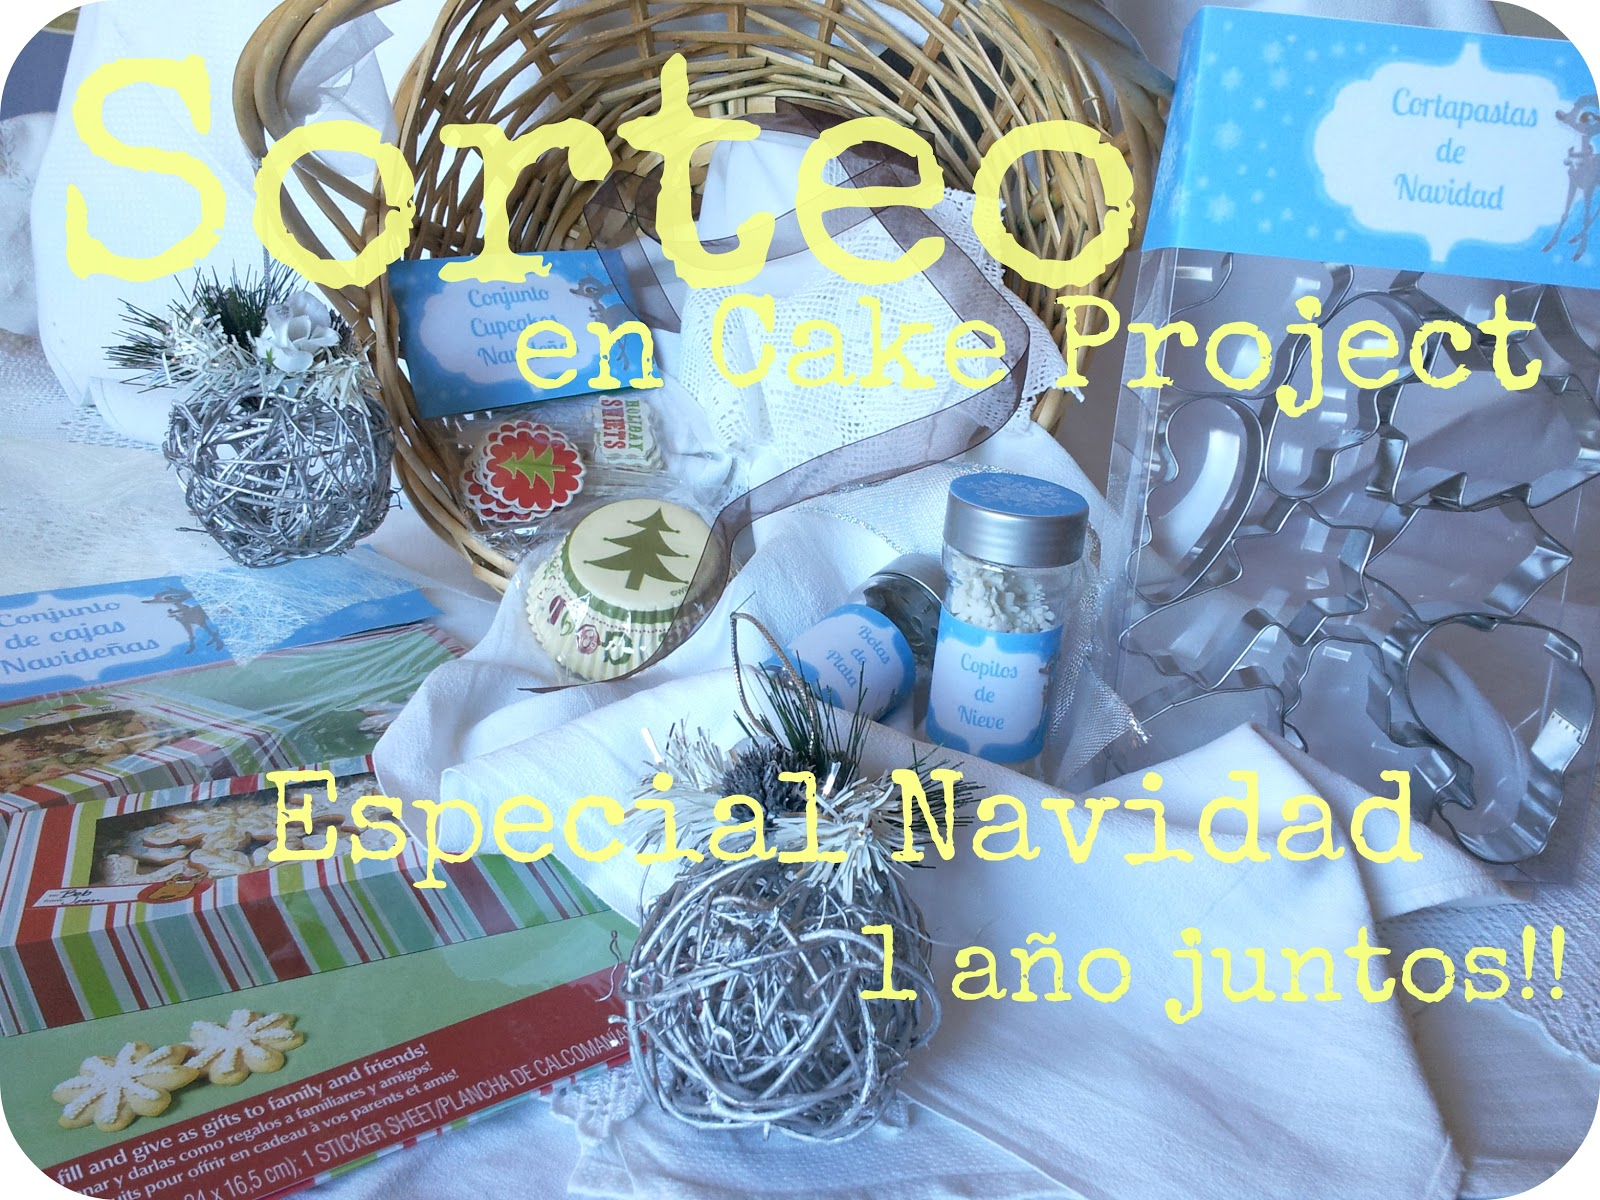 SORTEO EN CAKE PROJECT